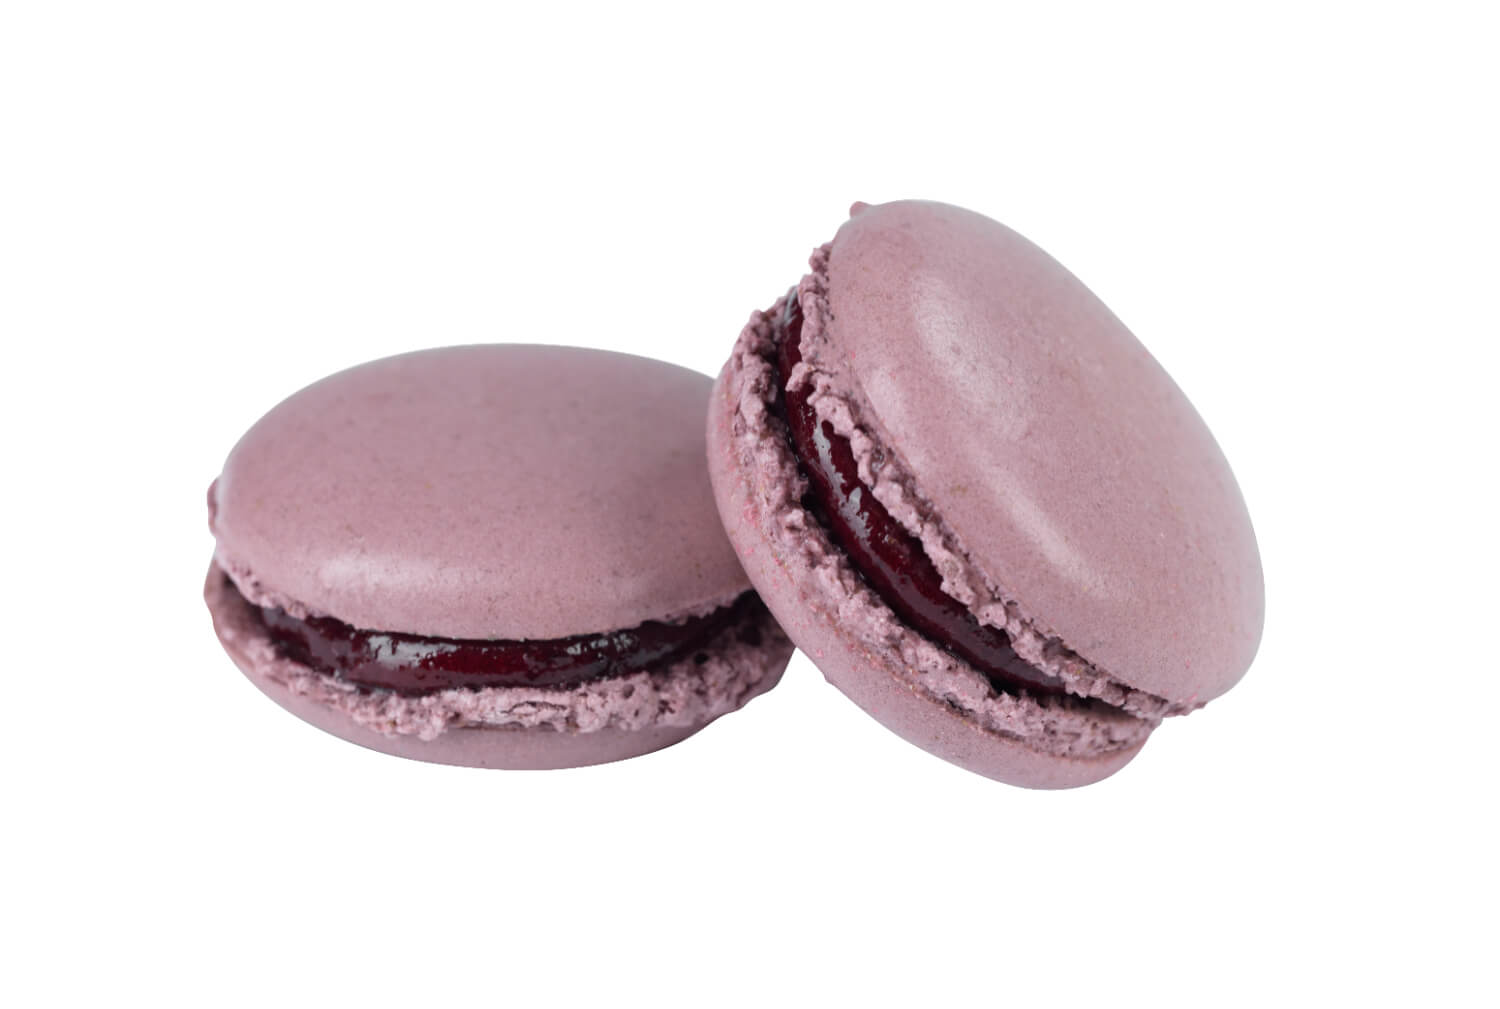 Cakes by Hancock - Black Currant Macarons